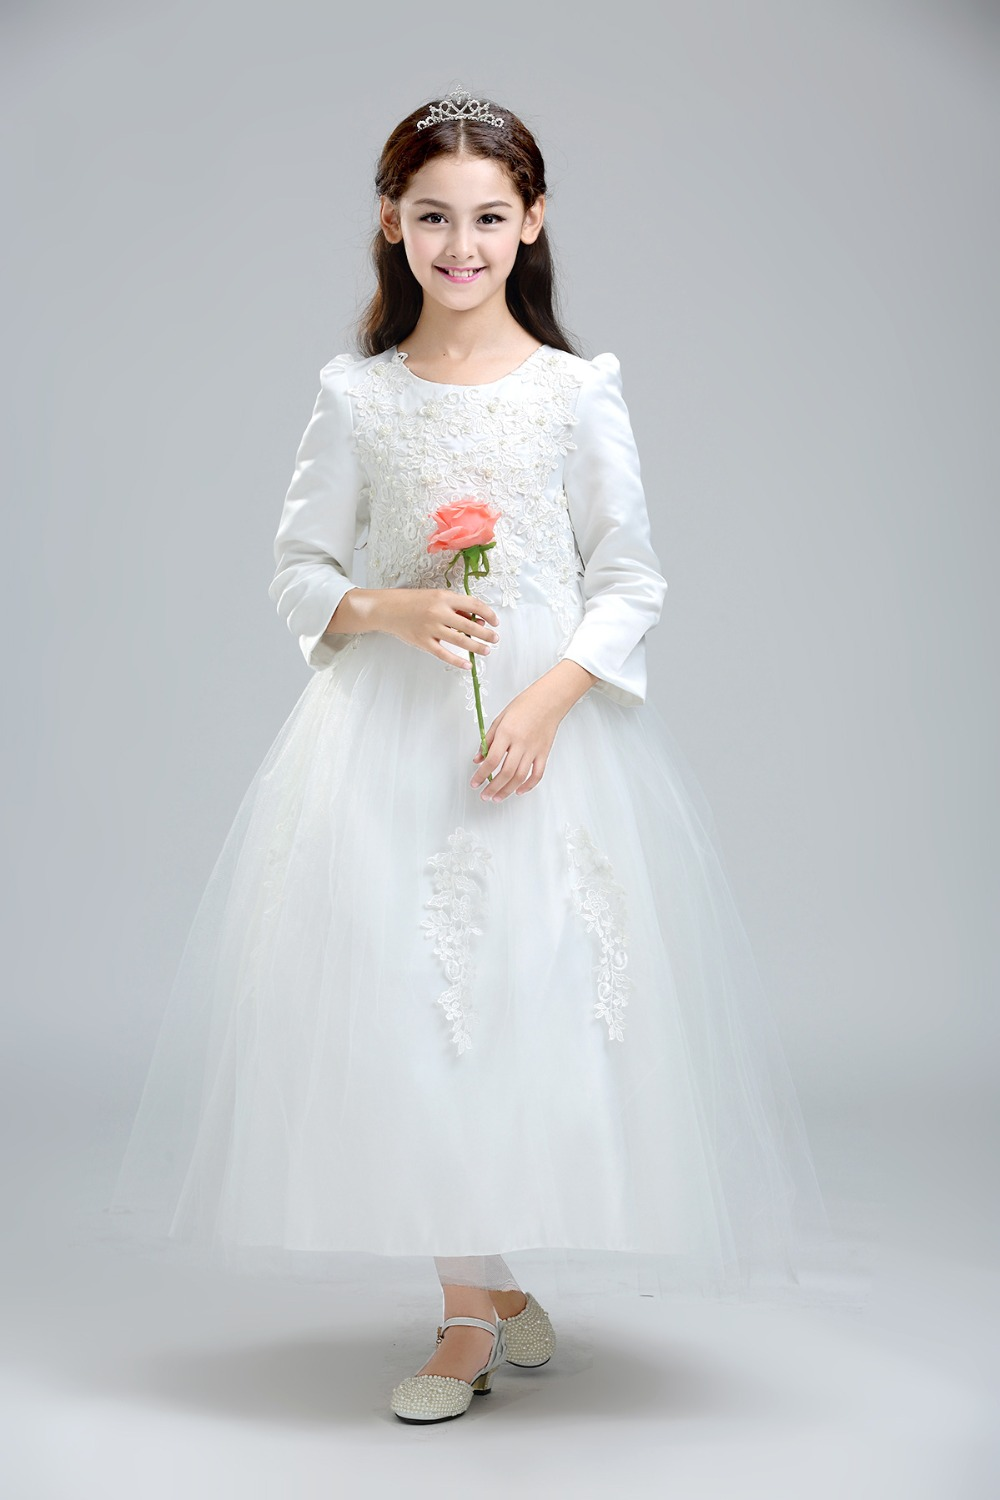 White Lace Children Wedding <font><b>Dress</b></font> For Teenage Long-Sleeve Girls Clothing Sequin Ankle-Length Princess <font><b>Dress</b></font> <font><b>Kids</b></font> <font><b>Cocktail</b></font> <font><b>Dress</b></font> image